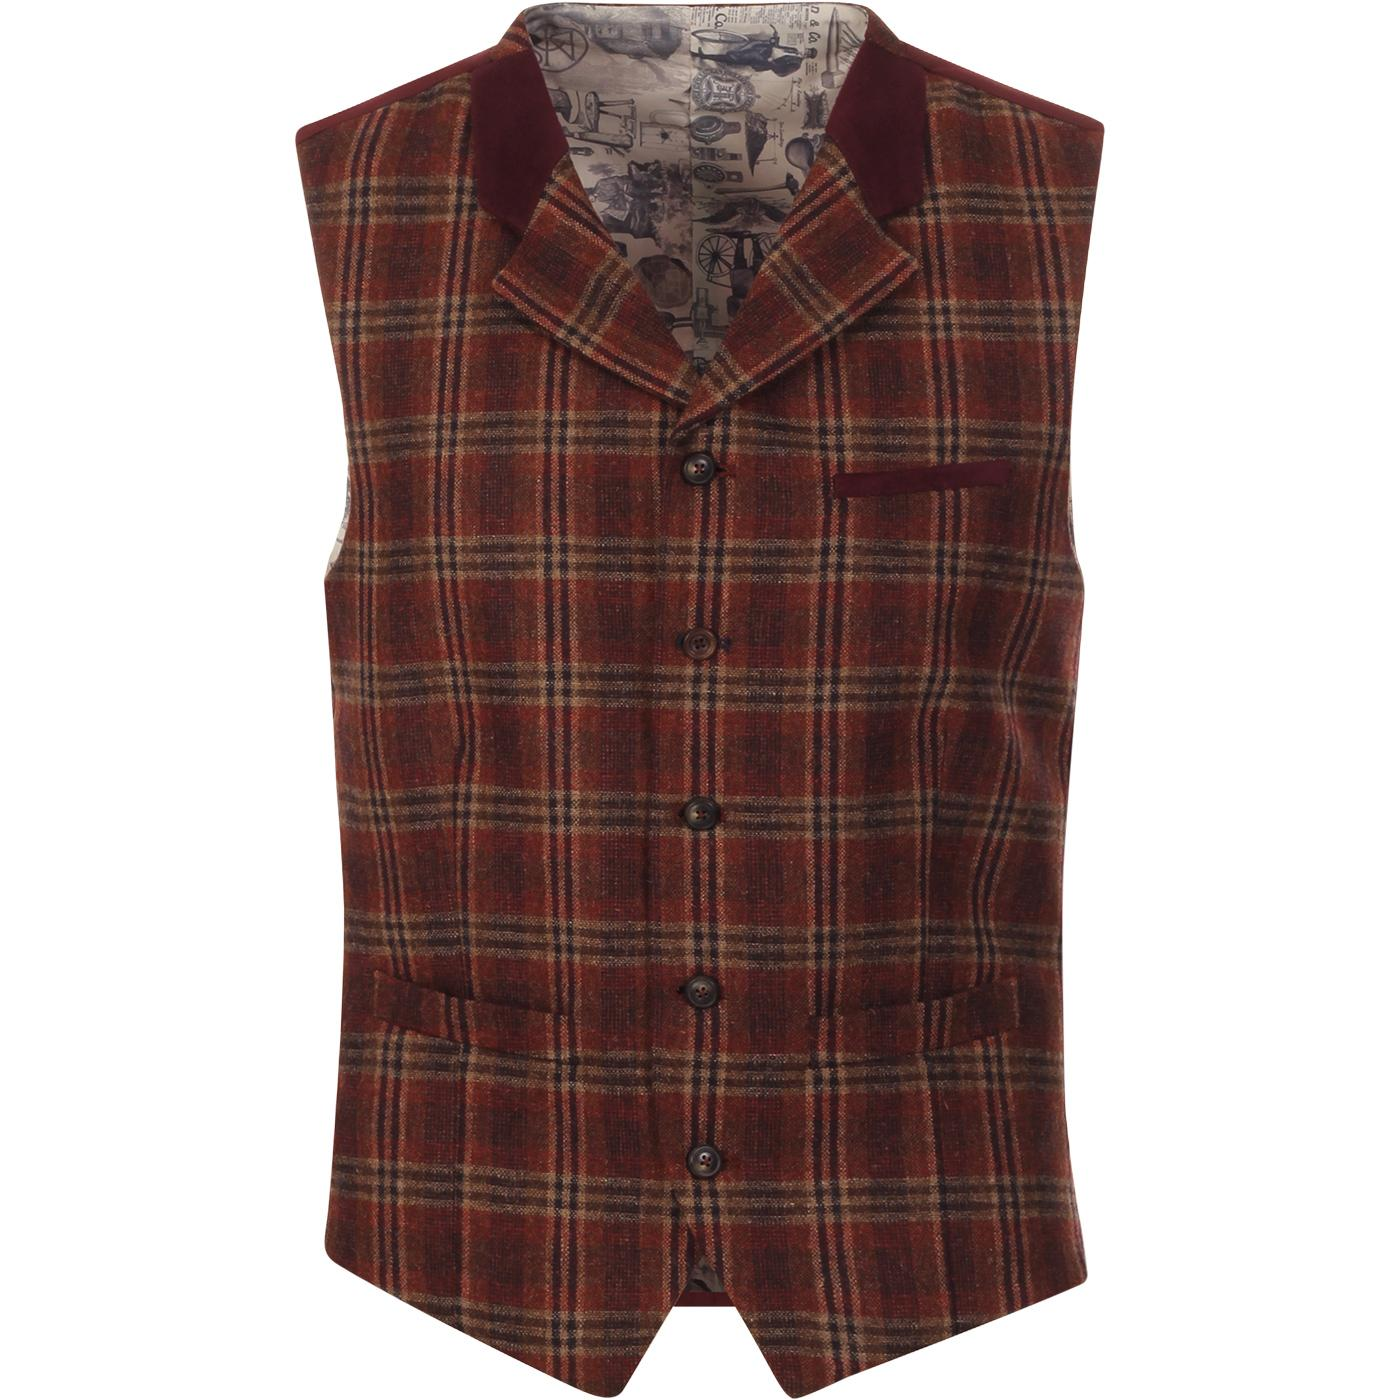 GIBSON LONDON Orange Check Teddy Boy Waistcoat